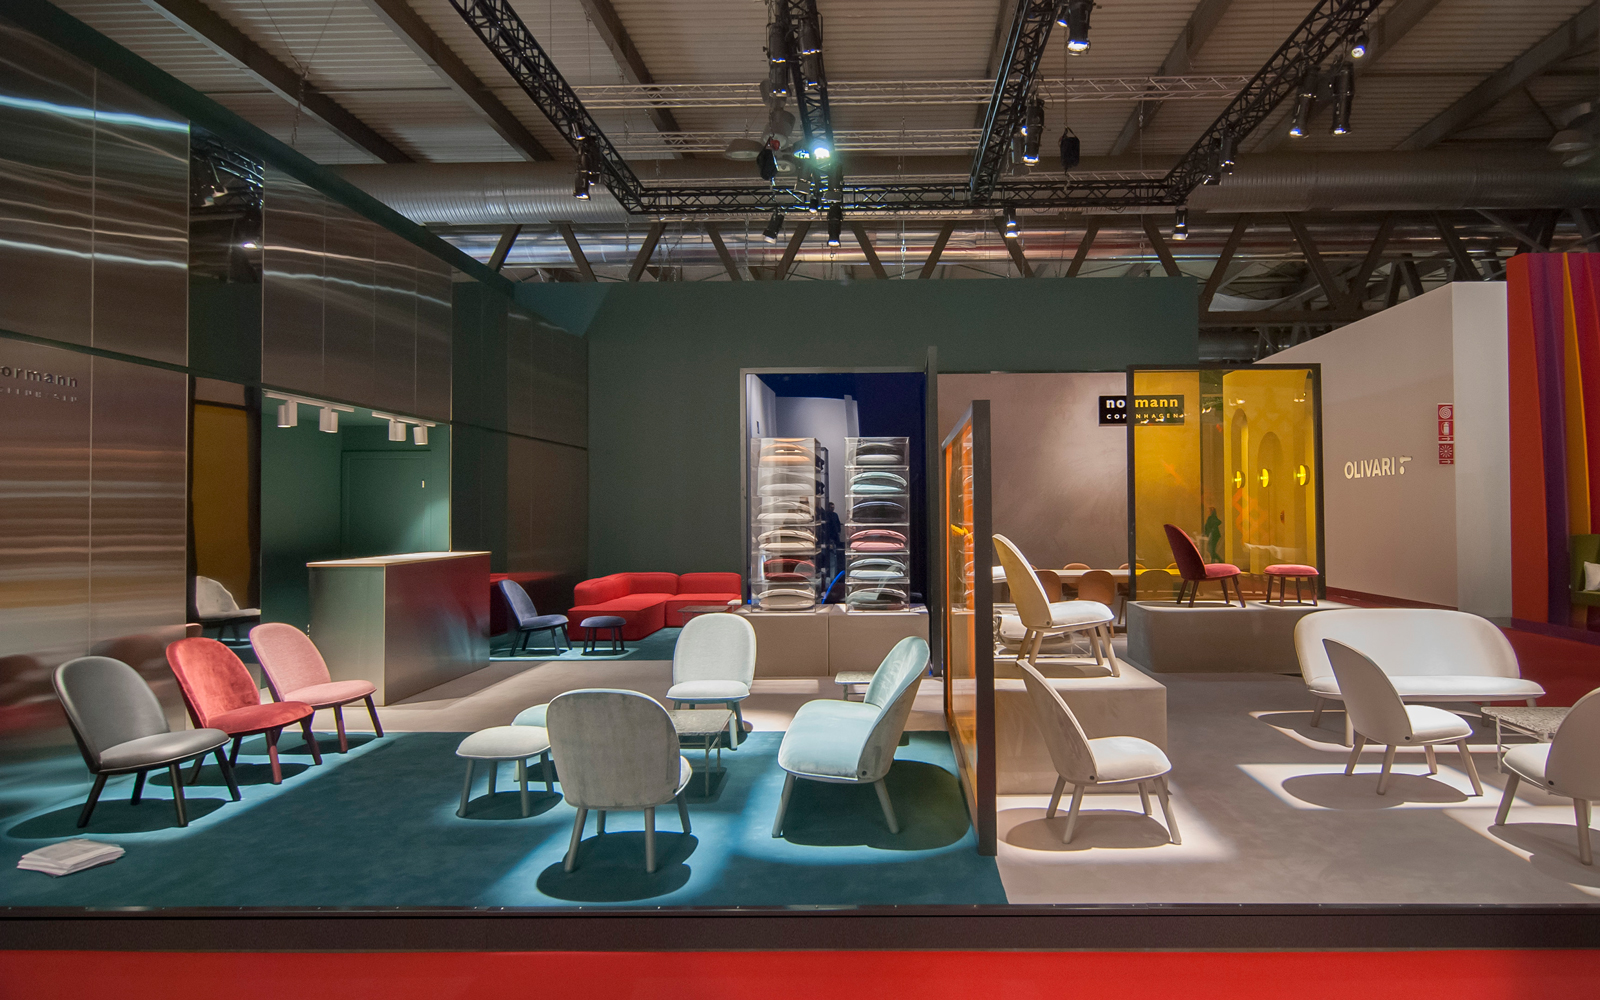 Salone del mobile 2016 for Salone del mobile